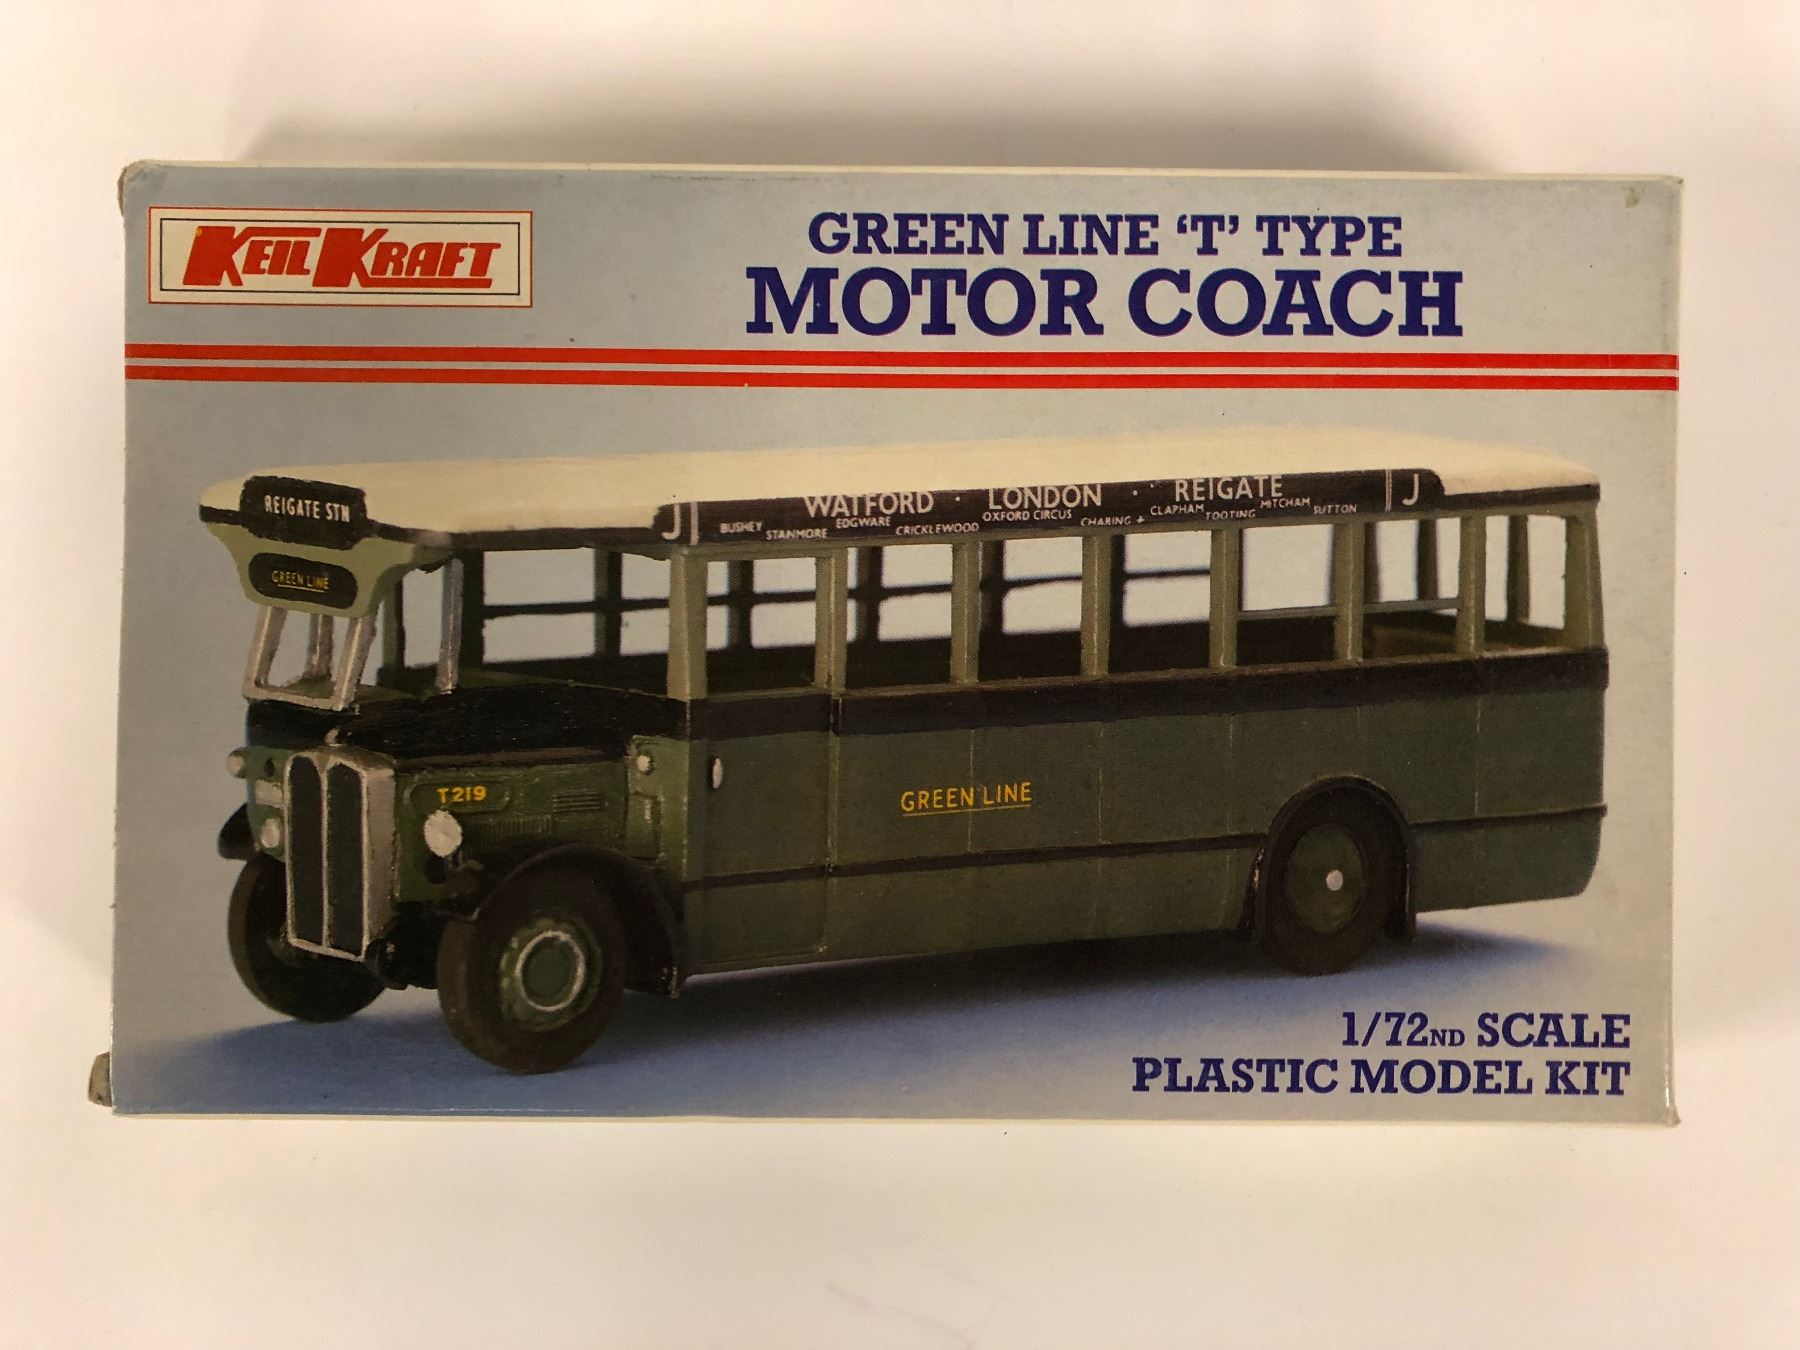 "spedition mobel hoffner, keil kraft green line ""t""type motor coach 1/72 sczle plastic model, Design ideen"